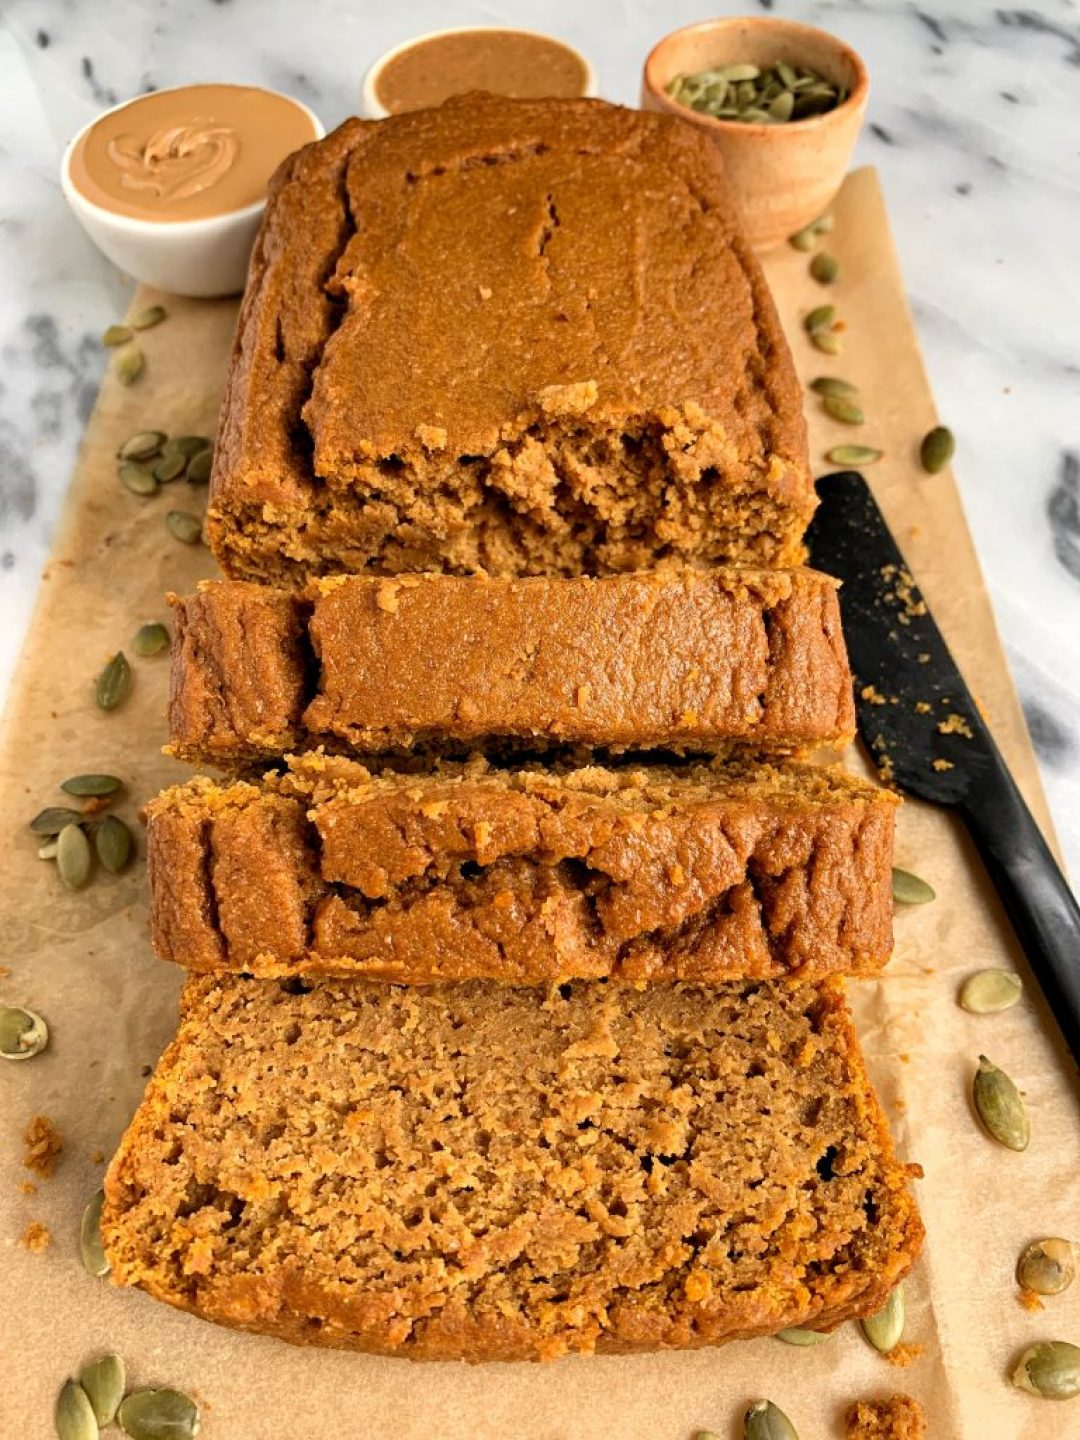 THE BEST GLUTEN FREE PUMPKIN BREAD EVER